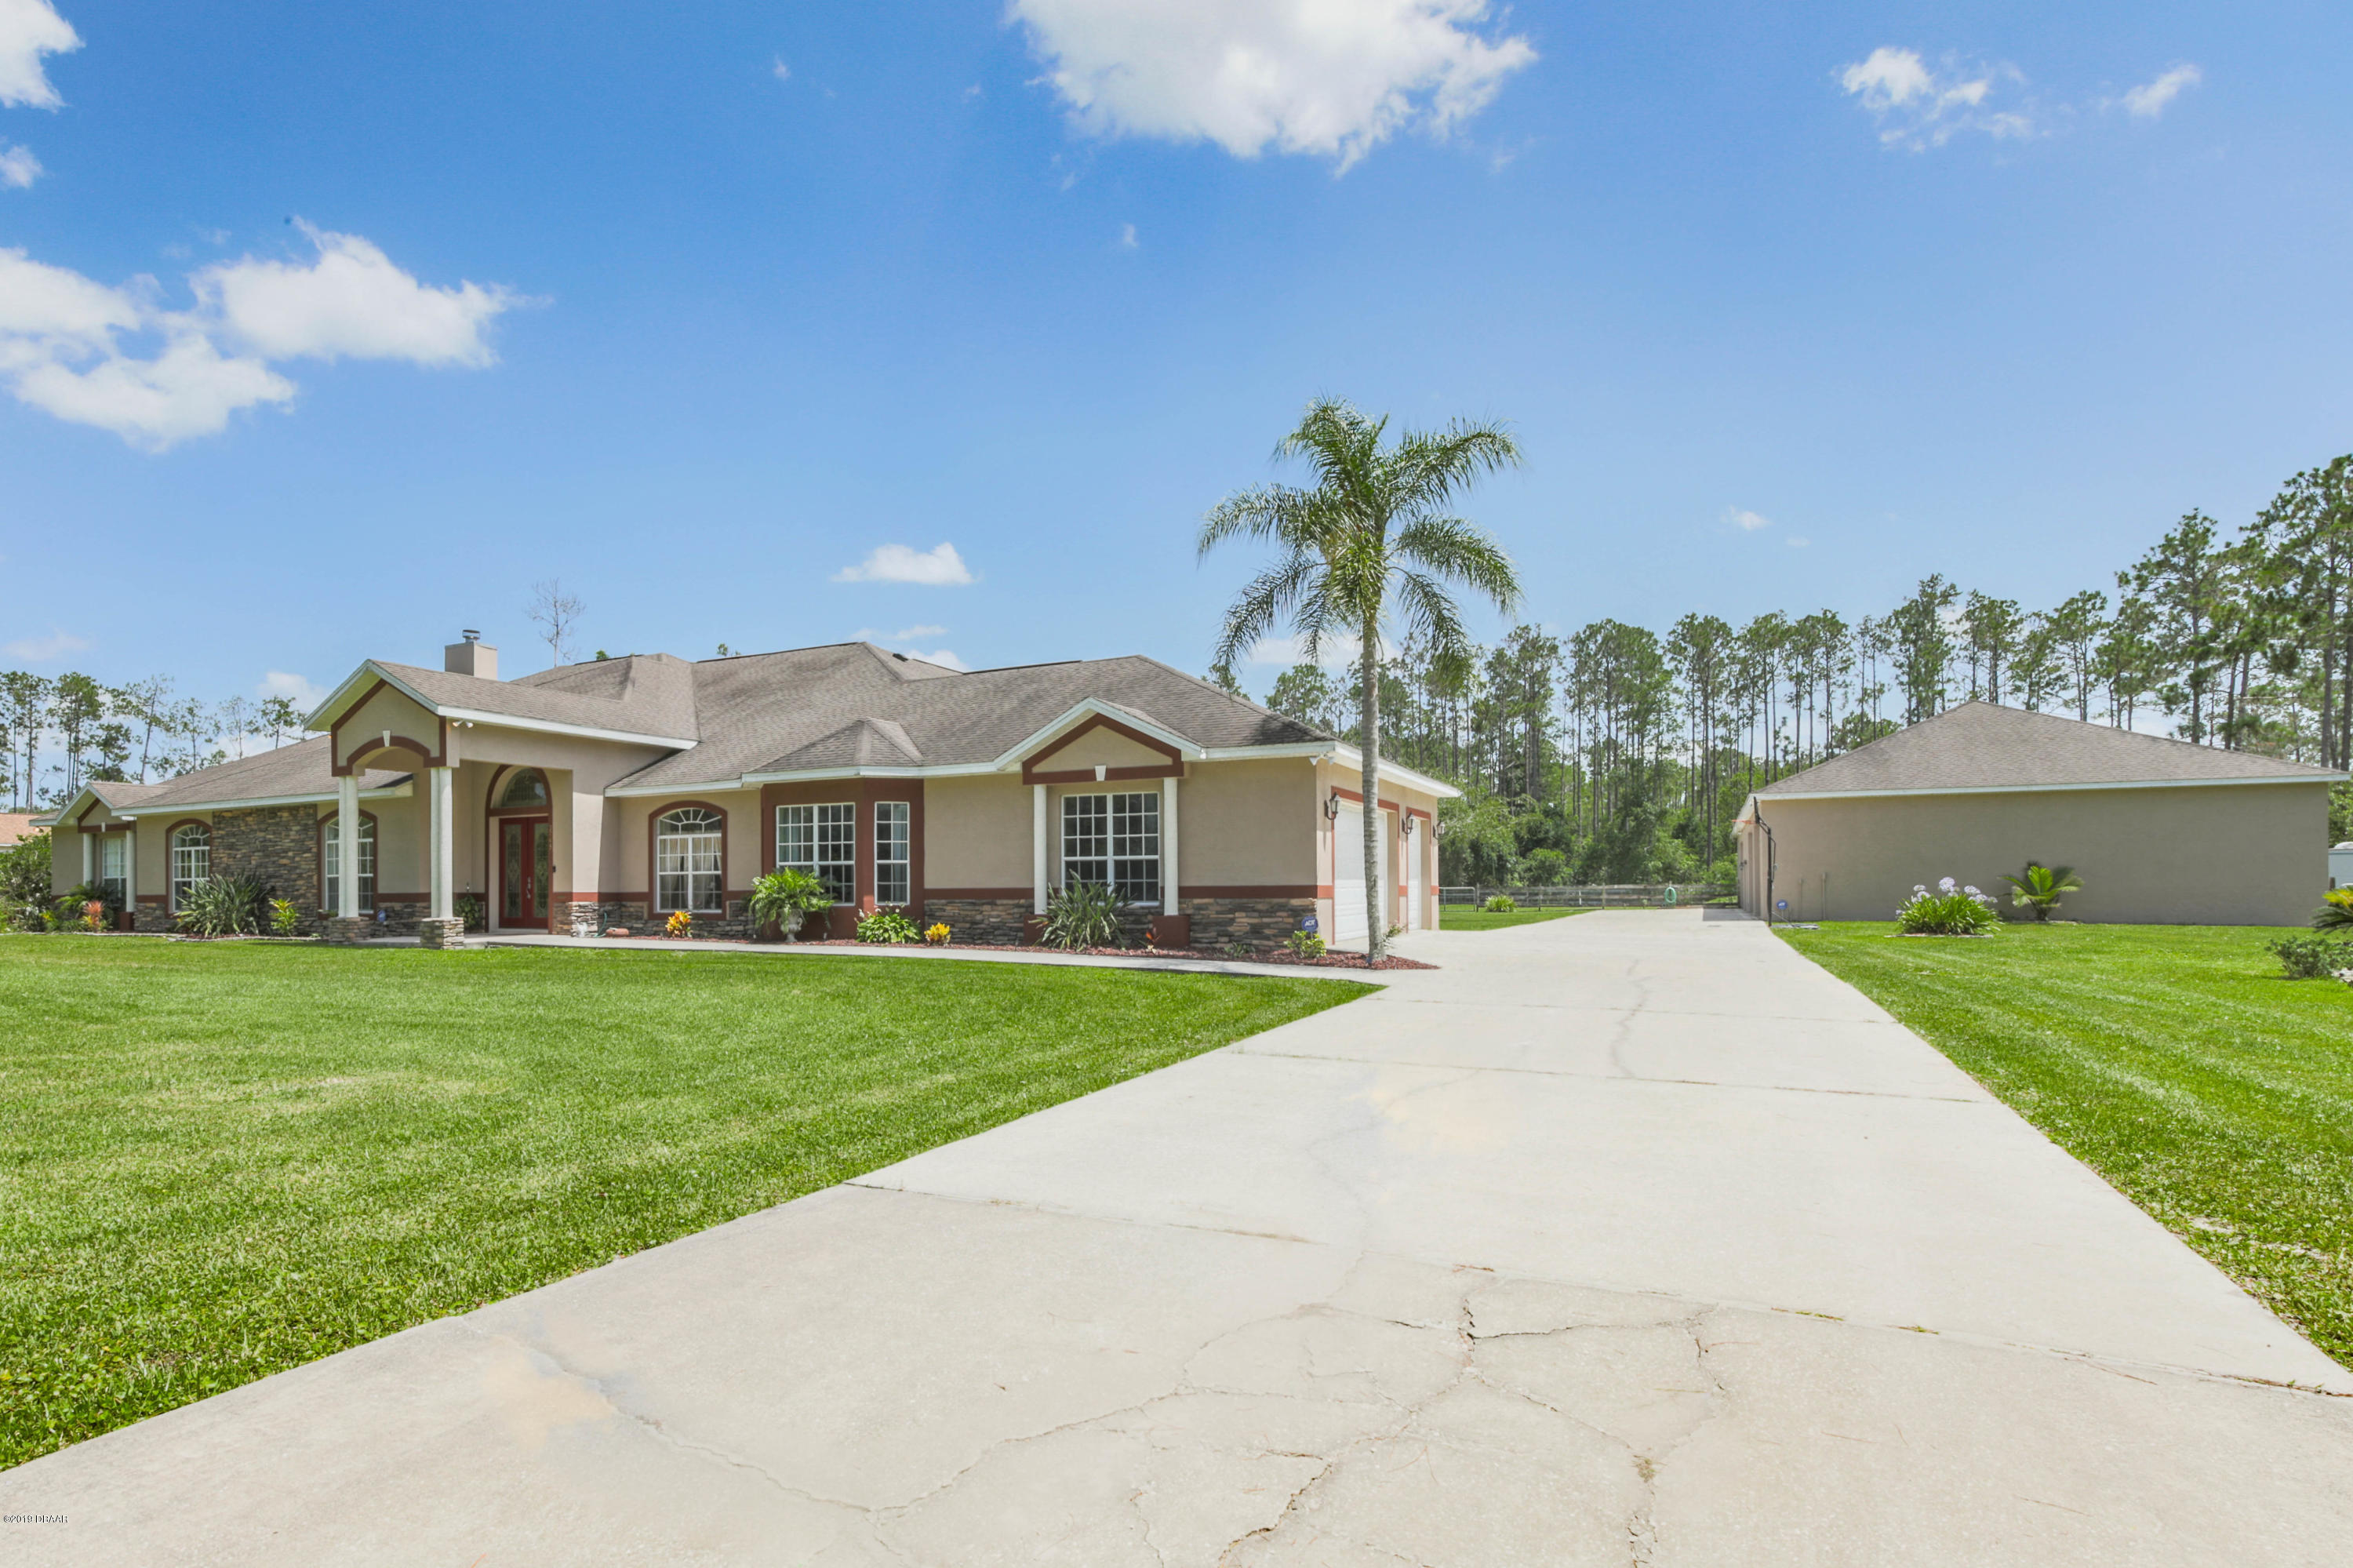 Photo of 3745 Lodge Pole Lane, Ormond Beach, FL 32174